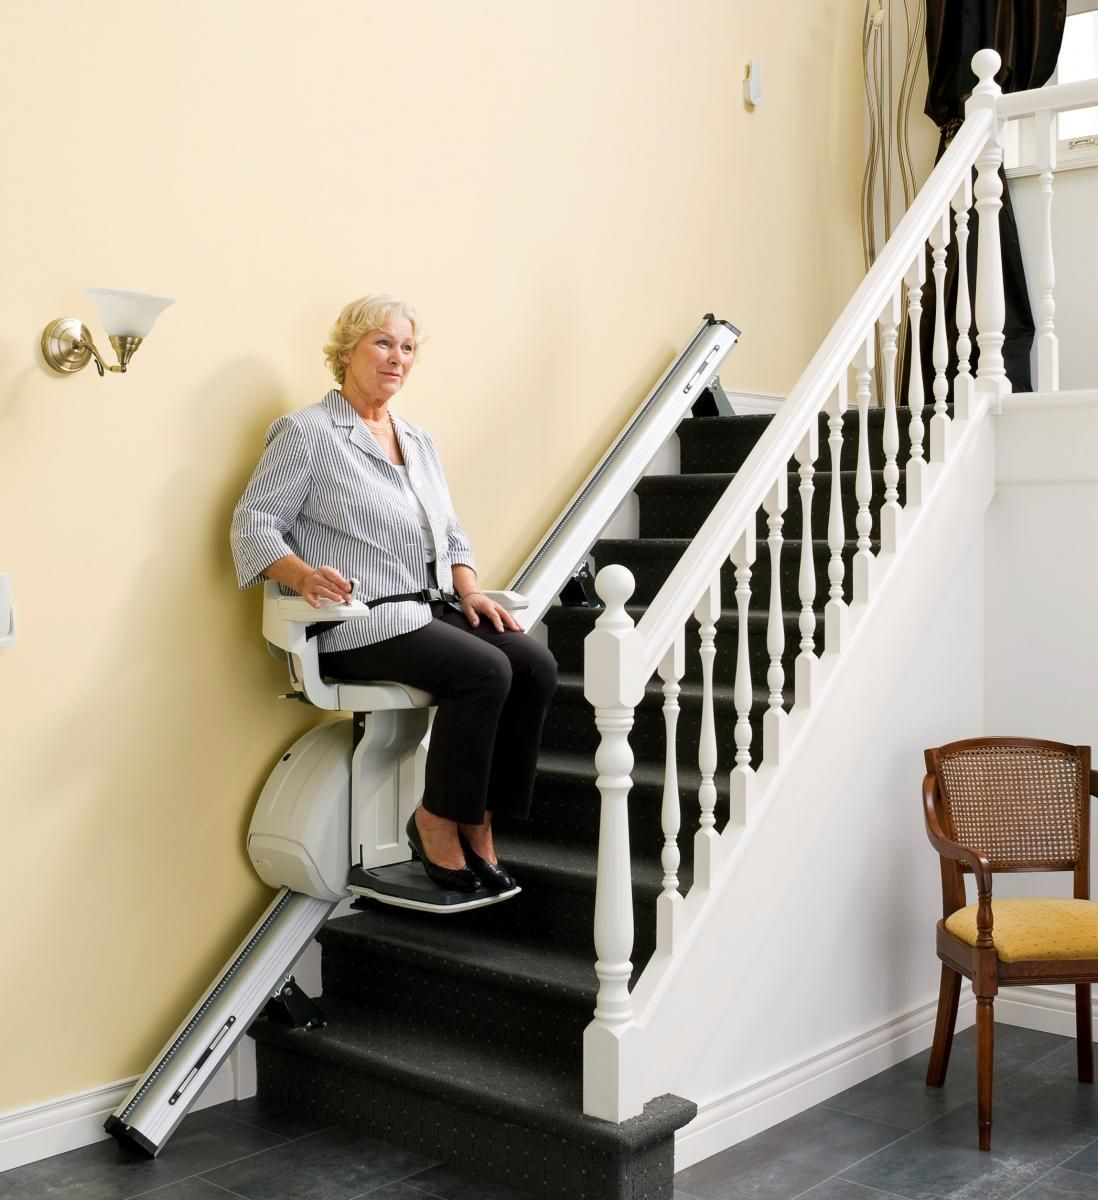 ascent stairlifts is a nationwide wholesaler of indoor stairlift